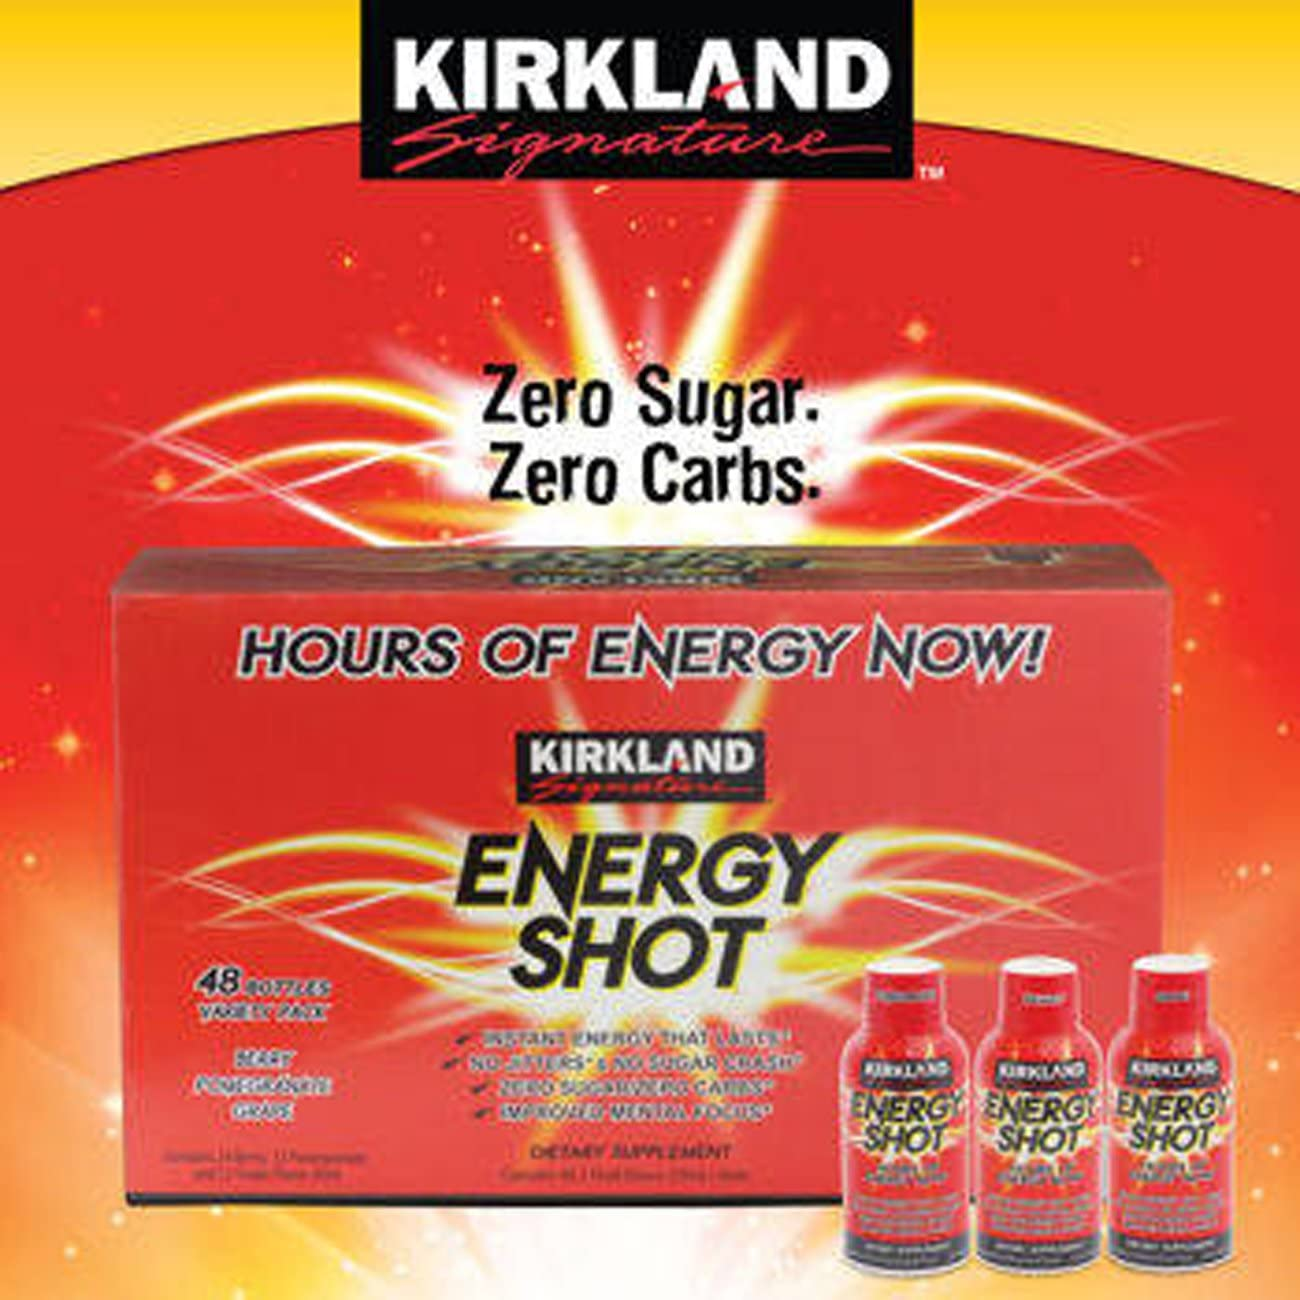 Kirkland Signature™ Energy Shot 48 Count, 2 Ounces Each